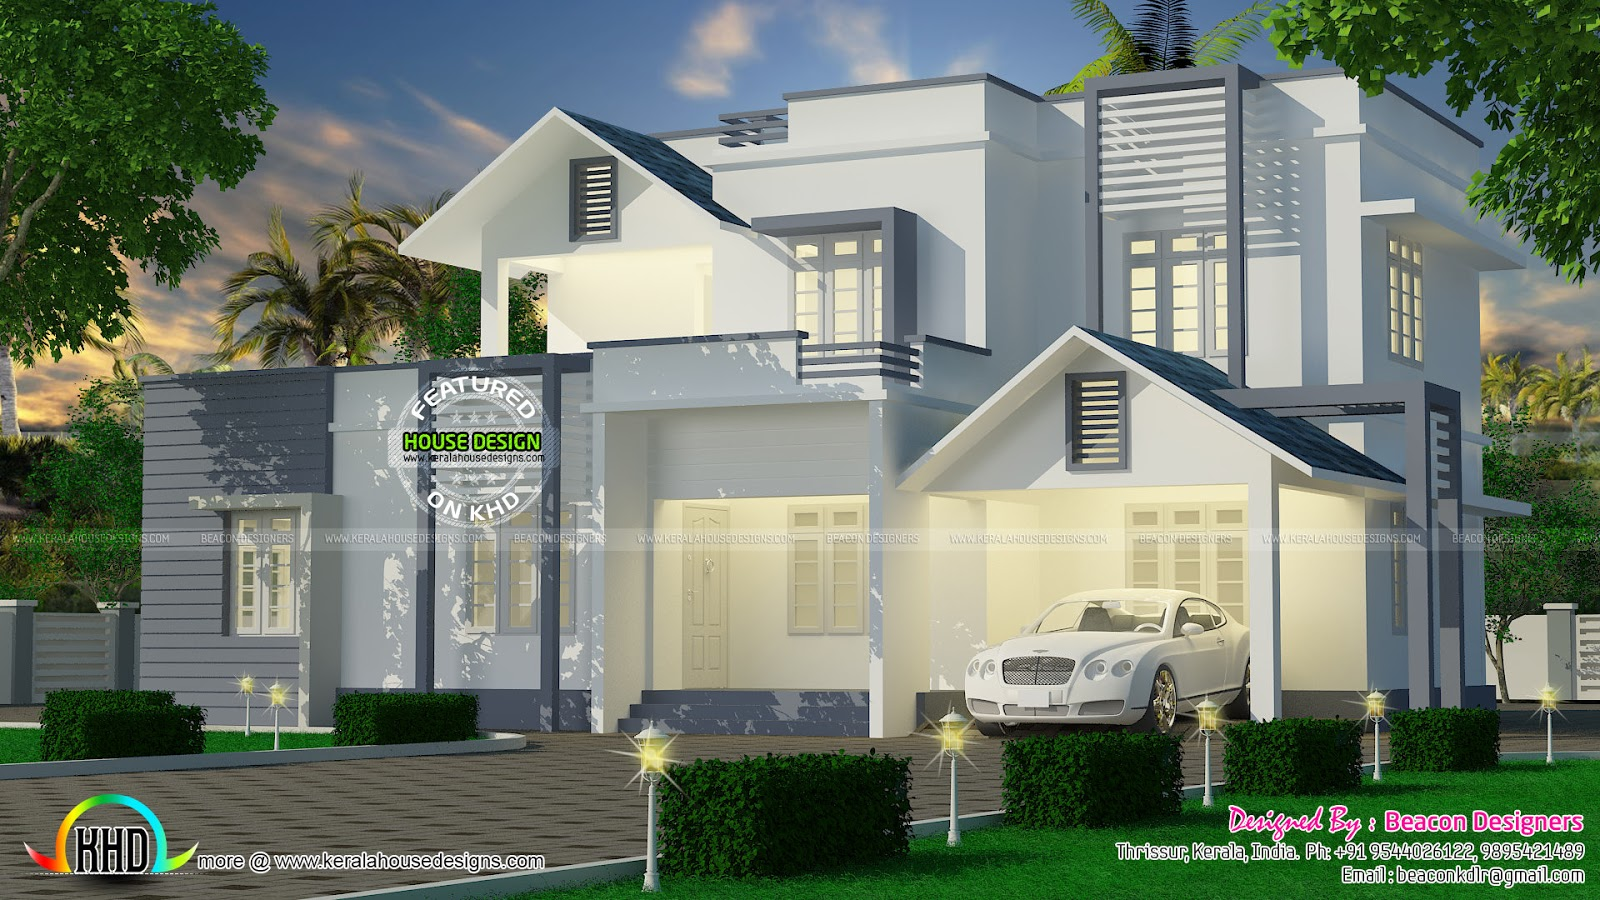 white and grey house design kerala home design and floor plans rh keralahousedesigns com white grey house exterior white grey house paint